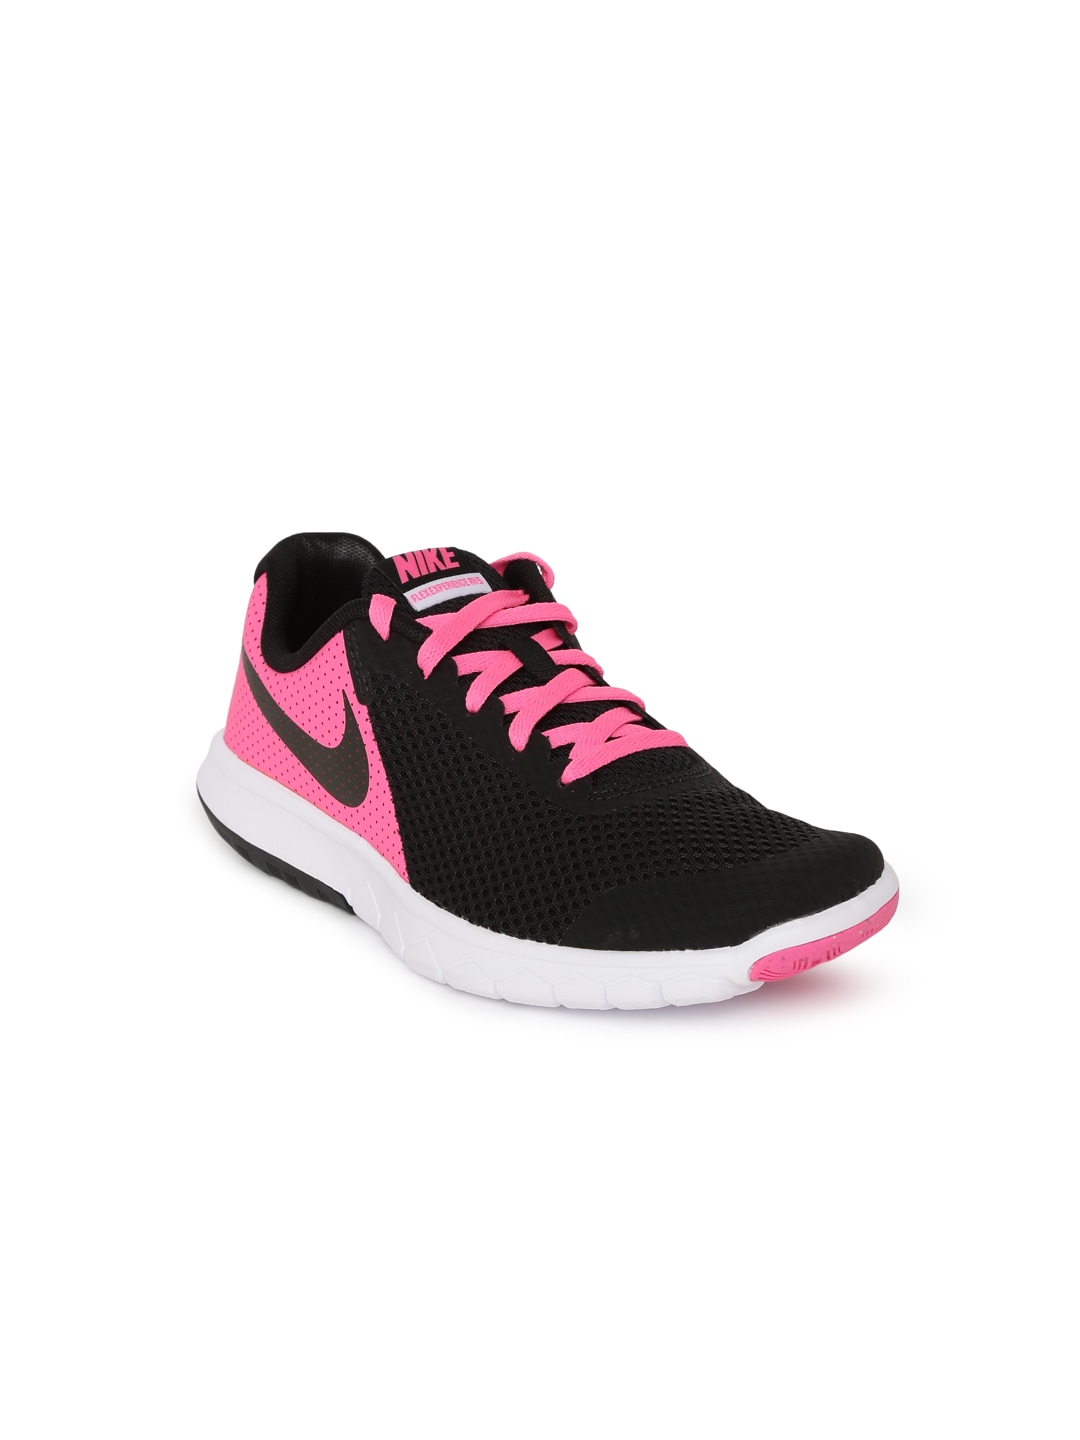 detailed look 8dec9 e101c Nike - Shop for Nike Apparels Online in India  Myntra